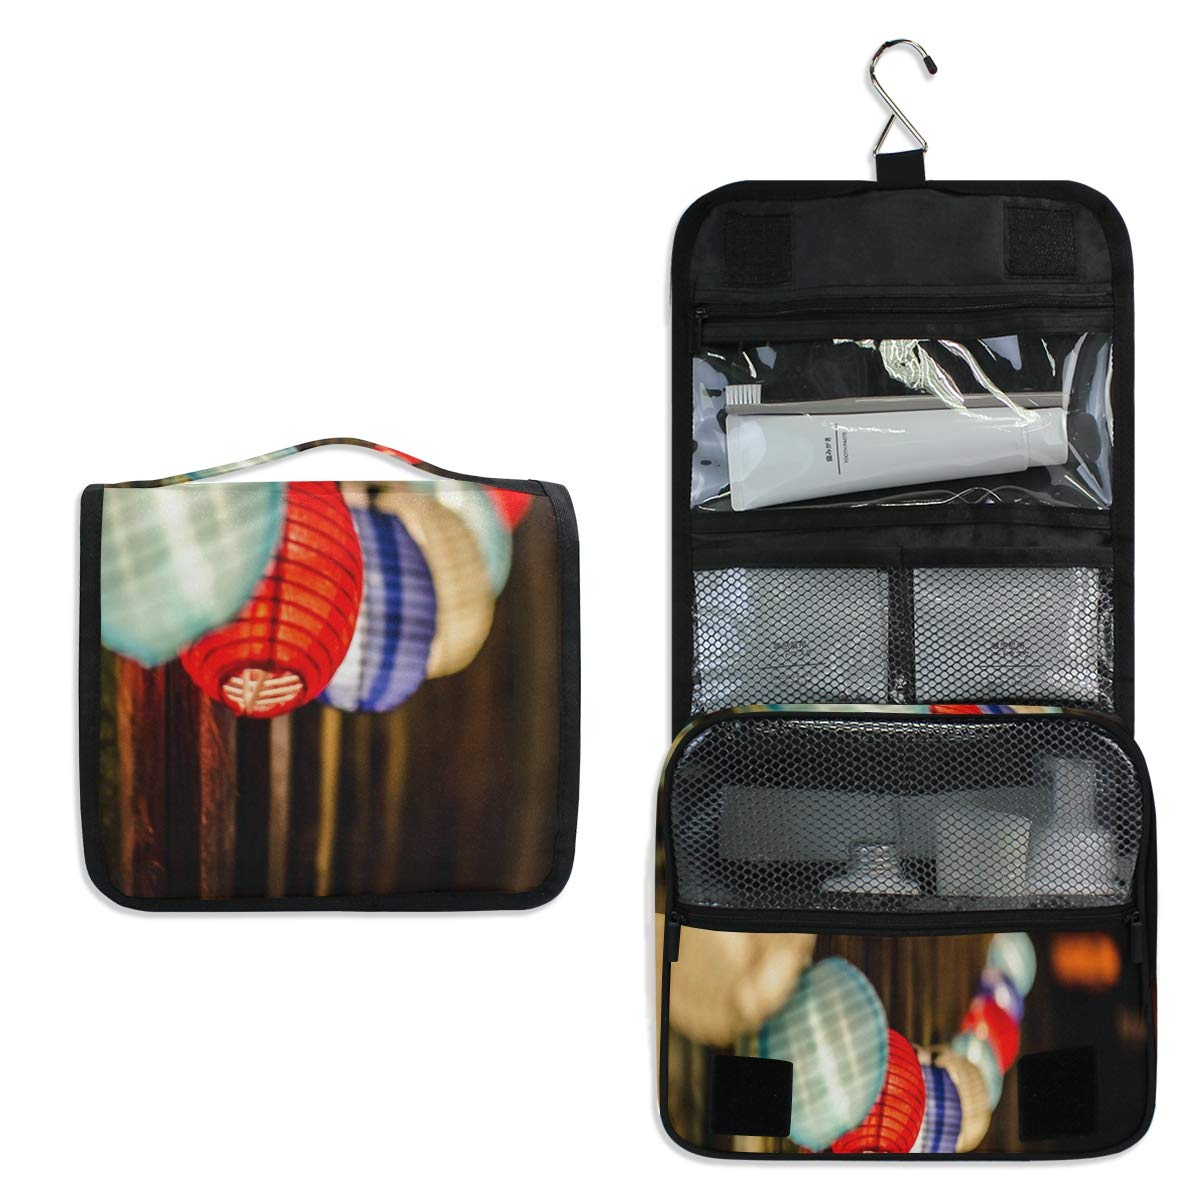 Hanging Toiletry Bag Lighting Ball Colored Wood Large Cosmetic Makeup Travel Organizer for Men & Women with Sturdy Hook